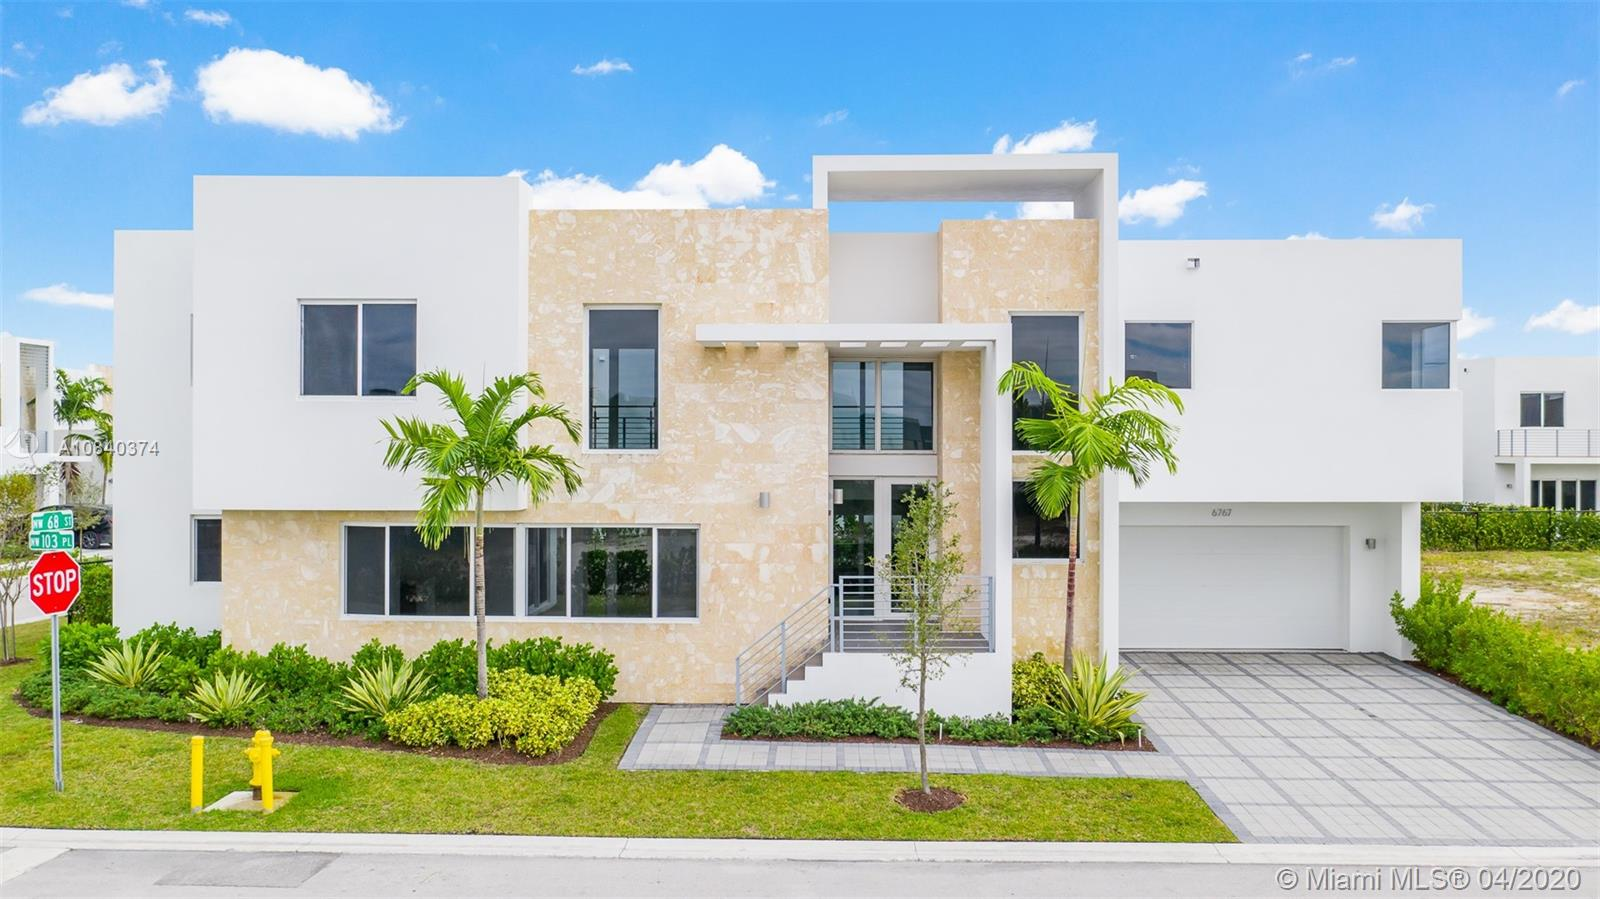 NEWLY Constructed NEOVITA DORAL combines the highest level of modern architecture & design w/ a new collection of unique 2 story residences. Alta Developers brings this exclusive gated community to the City of Doral w/ a private 2 story clubhouse equipped w/ indoor & outdoor amenities-State of the art fitness & sauna, upscale wet bar, sophisticated game & media rooms, lounge areas, kitchen & dinning w/ outdoor spaces, pool & spa. Custom homes feature imported porcelain flooring, wood and/or carpet in stairwell, 2nd floor hallways & bedrooms. S/S Bosh appliances, European cabinetry, s/s sink, Covered terrace, Impact Windows/Doors, 2 Car Garage. Centrally located, minutes from Downtown Doral, MIA Airport, major highways, Malls, Restaurants. Learn about buyer's incentives